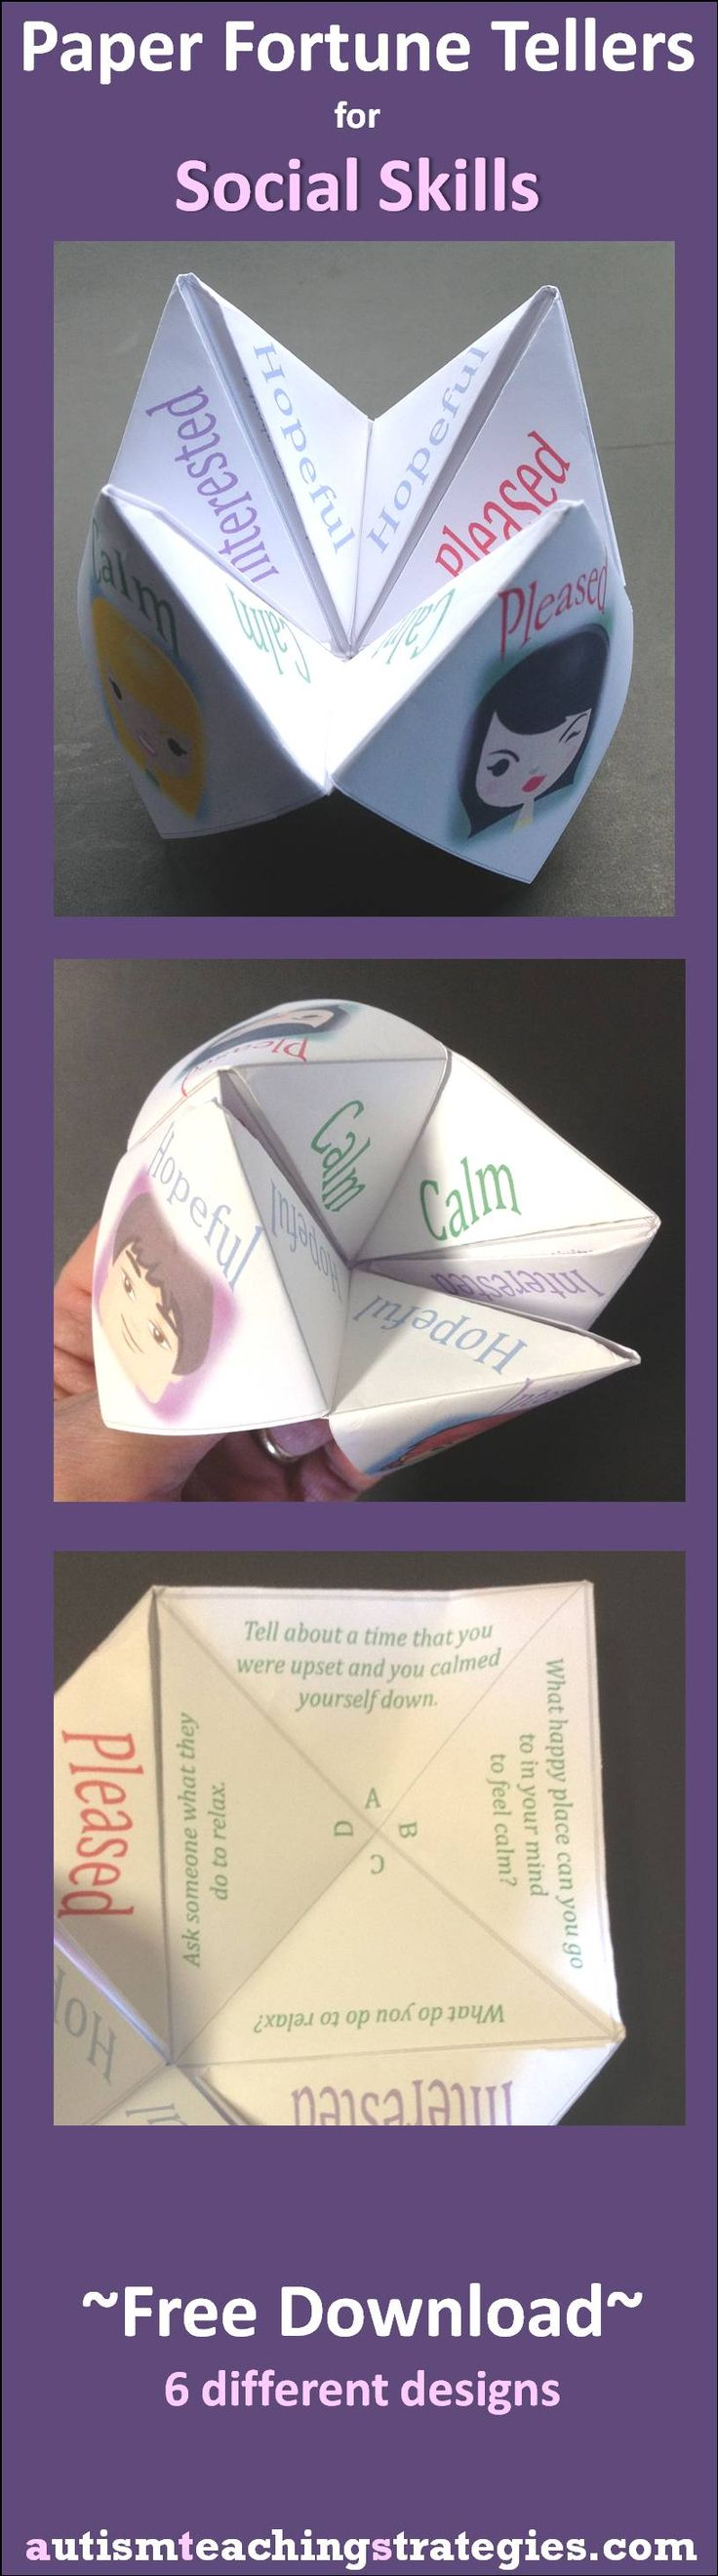 """This paper """"fortune teller"""" is part of a set of nine to be used to stimulate interest in social skills teaching."""